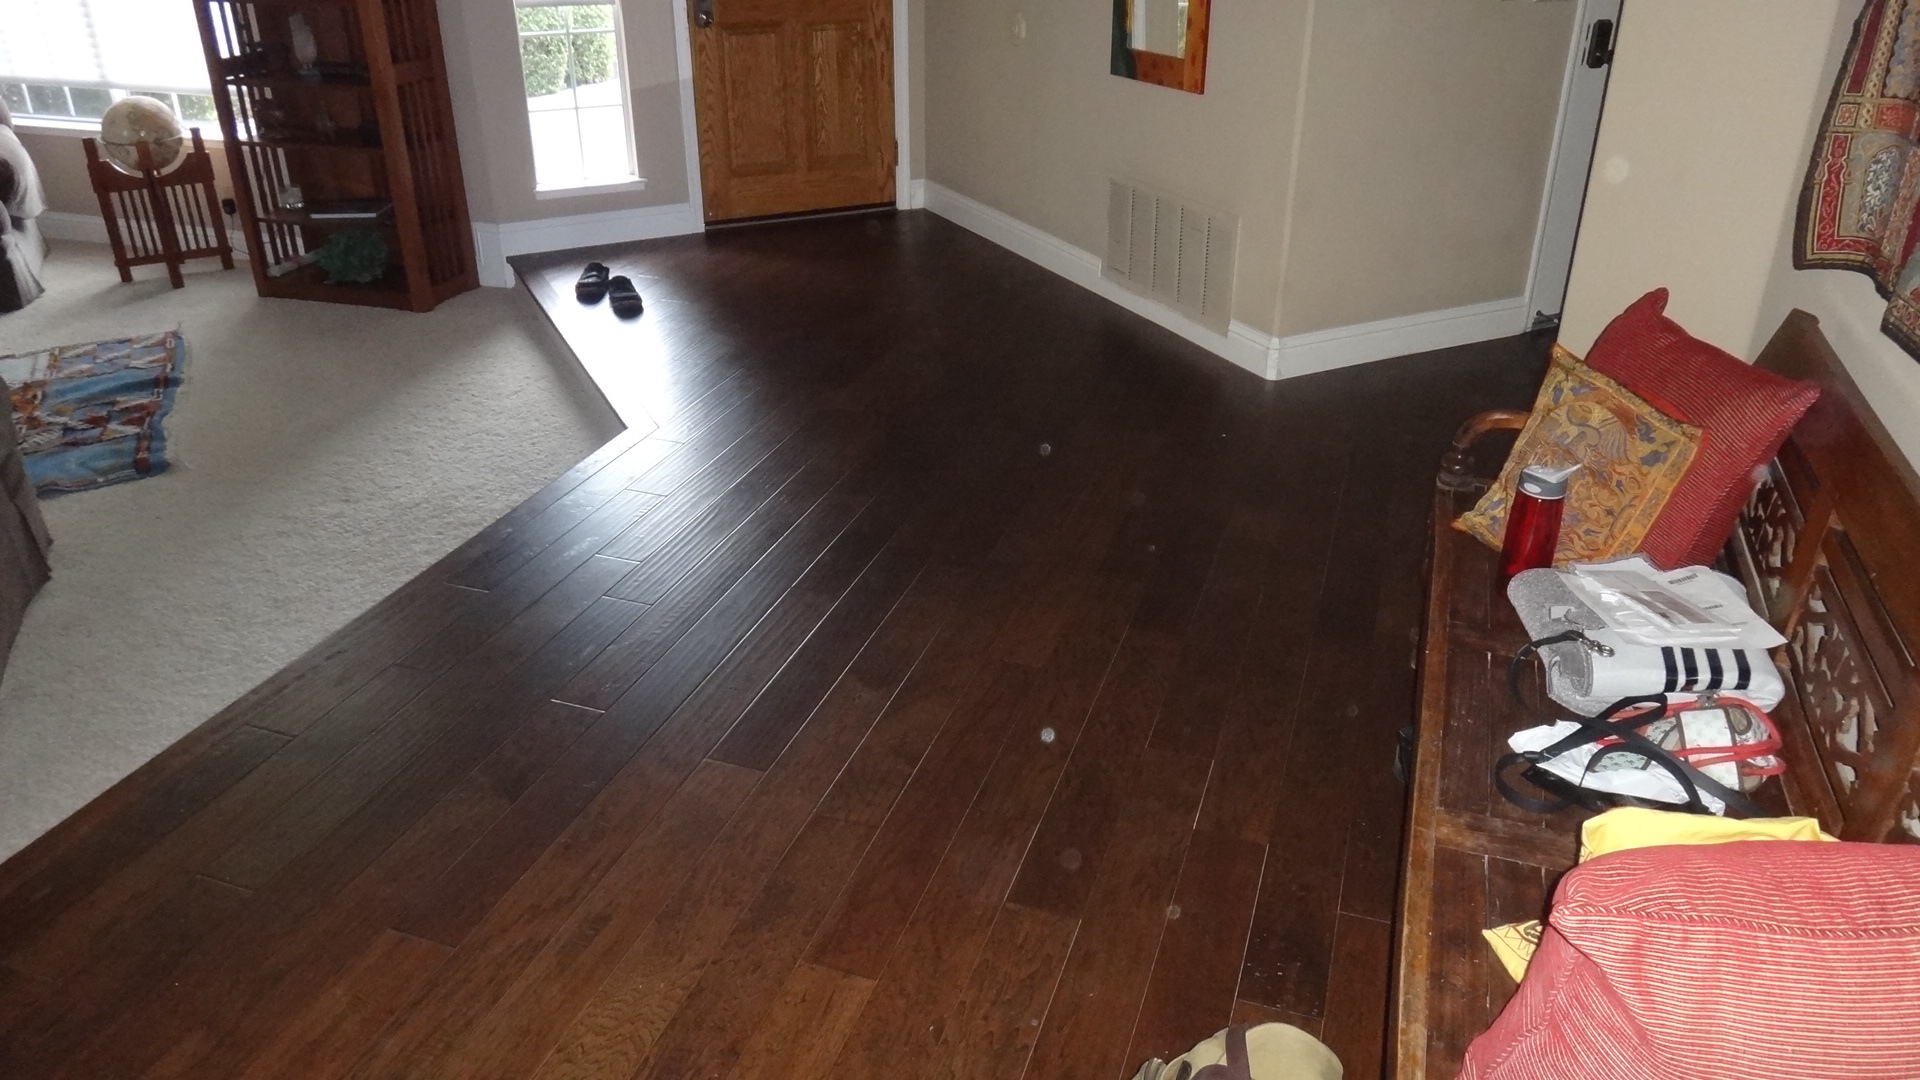 Four Major Advantages Of Carpet And Flooring